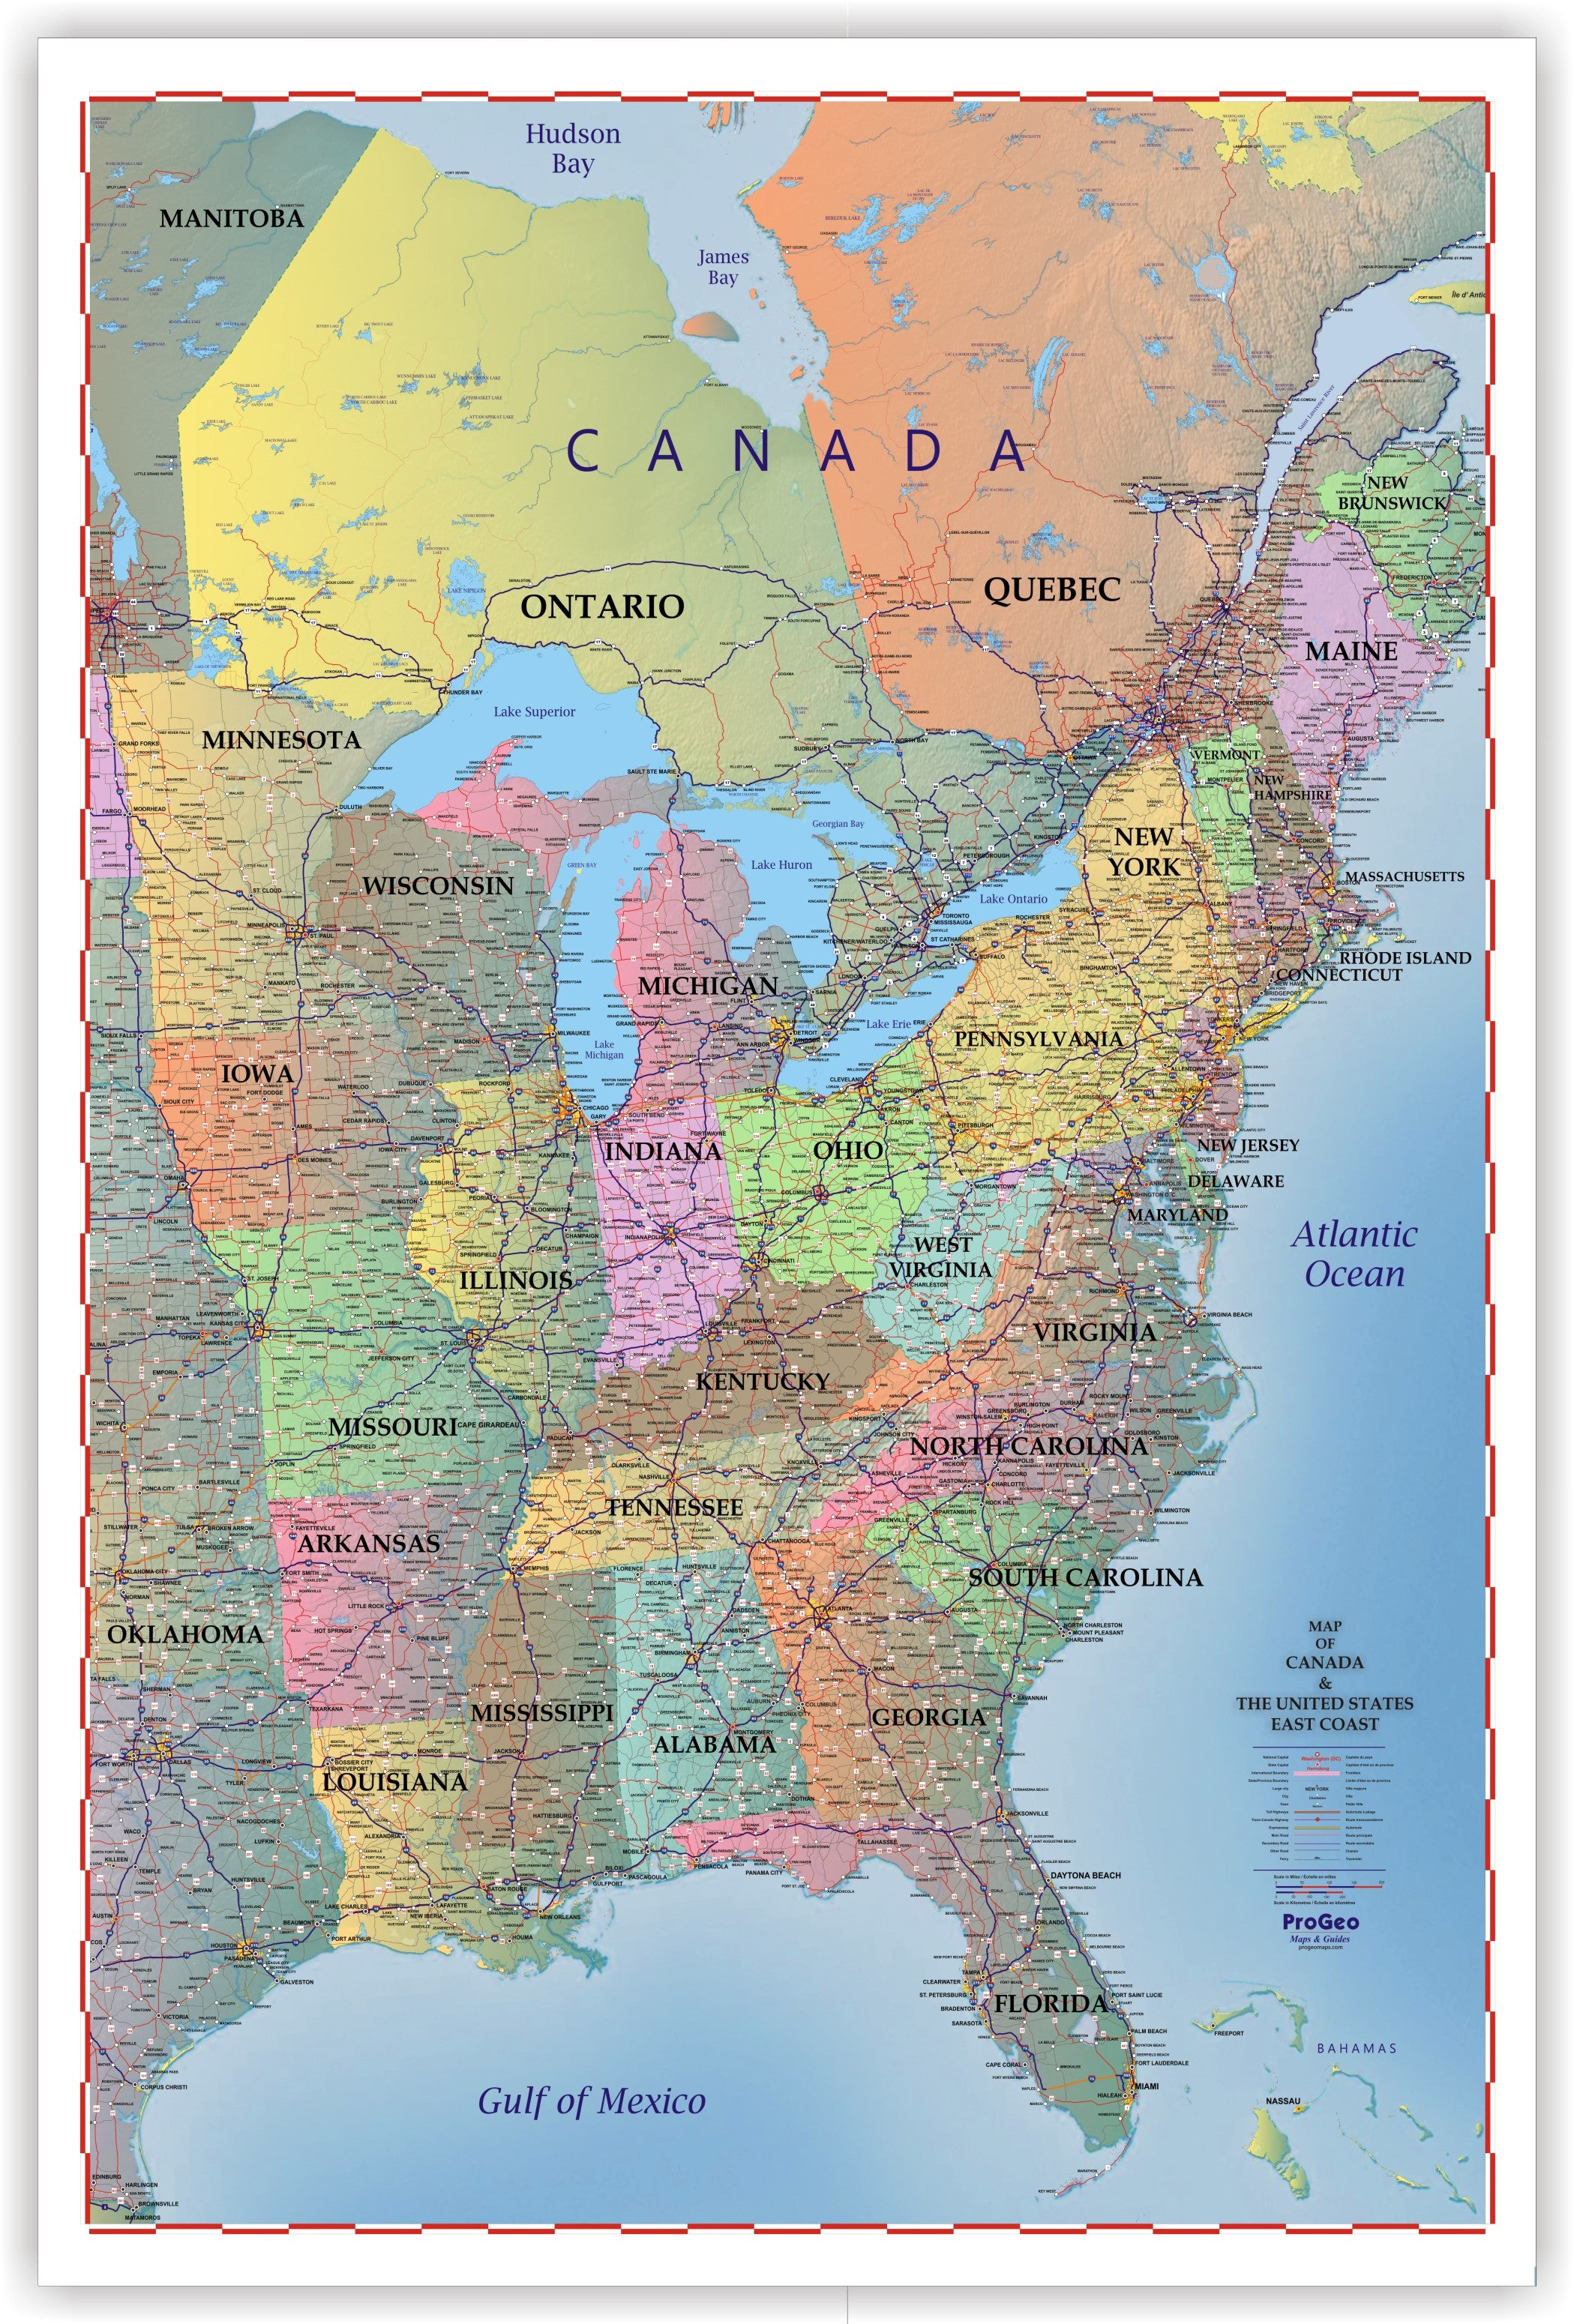 Picture of: Trucker S Wall Map Of East Coast Canada And The United States 2021 48 Progeo Maps Guides